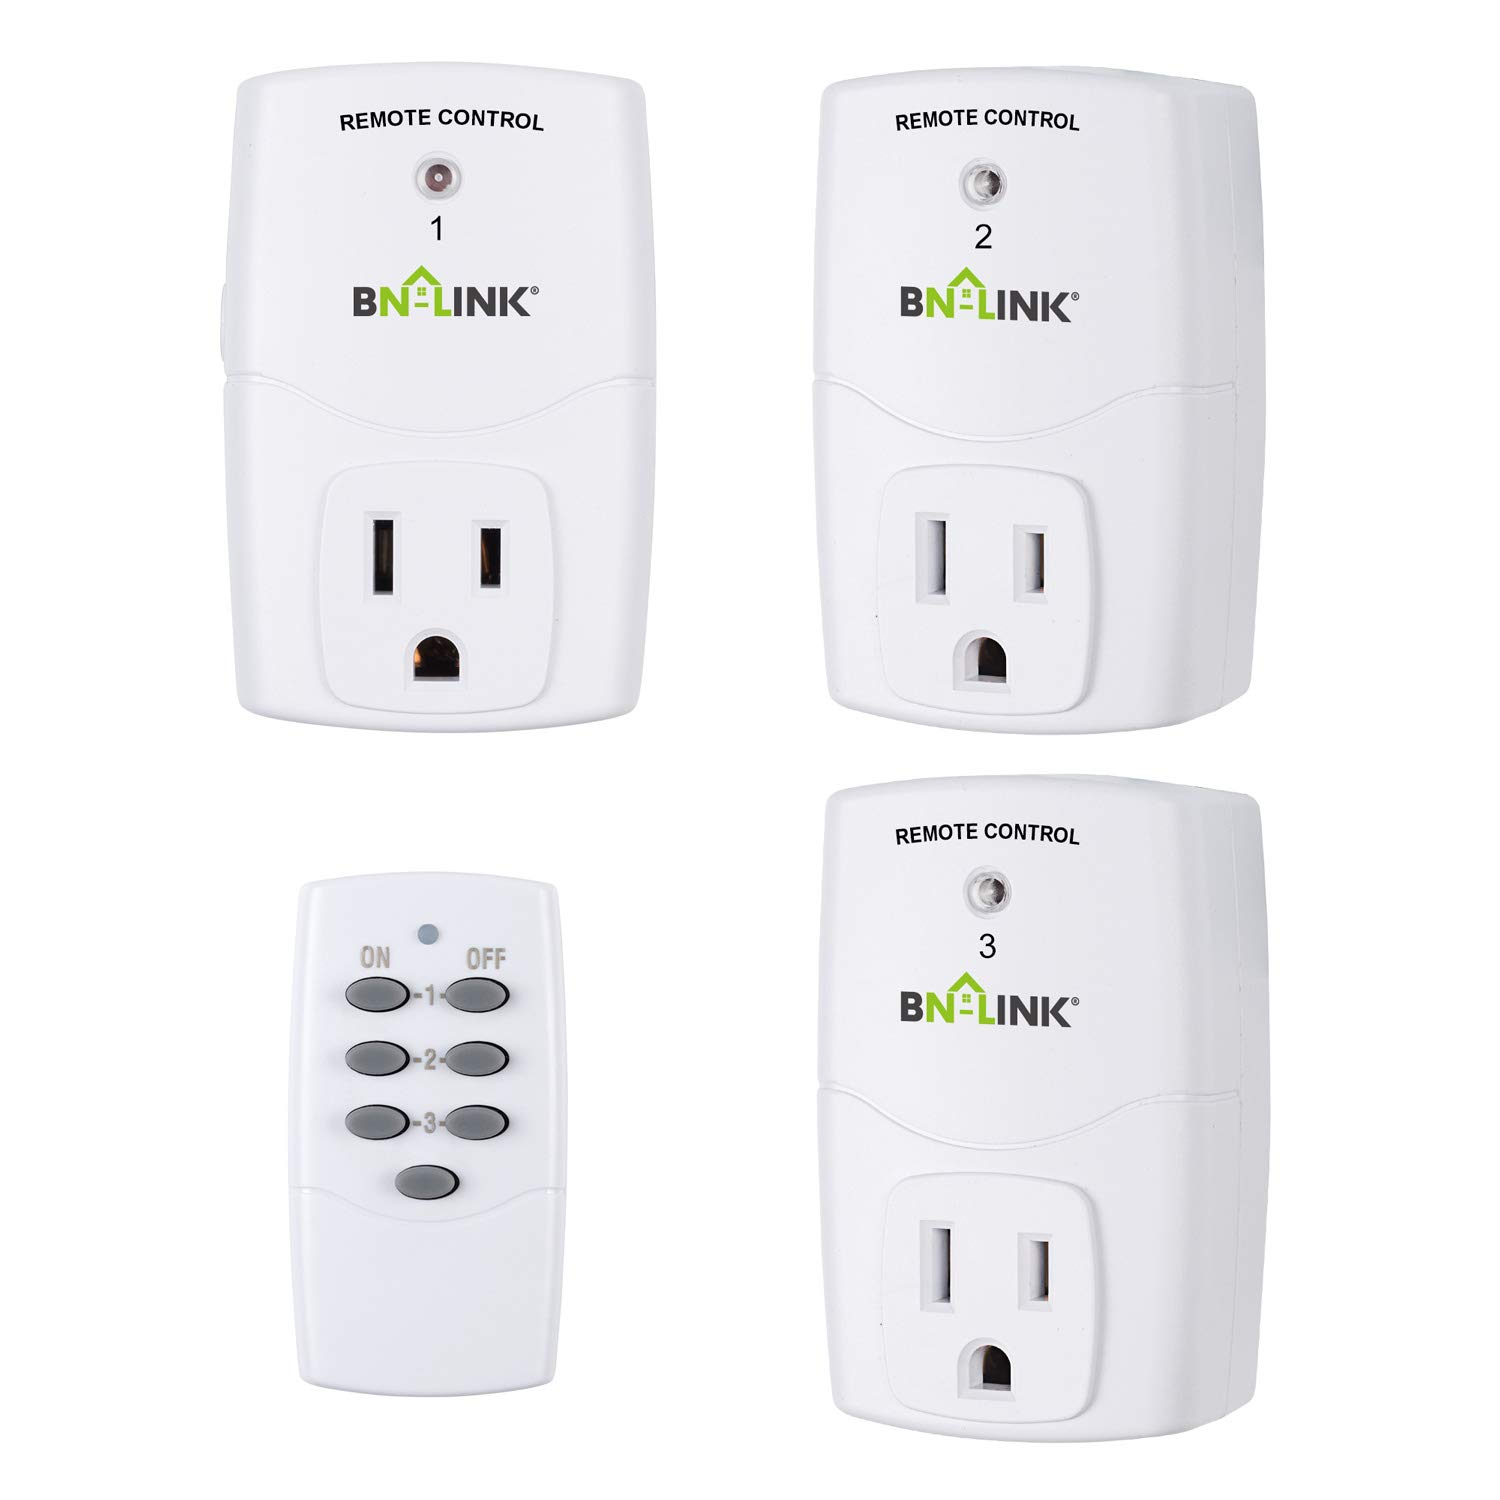 BN-LINK Mini Wireless Remote Control Outlet Switch Power Plug In for Household Appliances, Wireless Remote Light Switch, LED Light Bulbs, White (1 Remote + 3 Outlet) 1200W/10A by BN-LINK